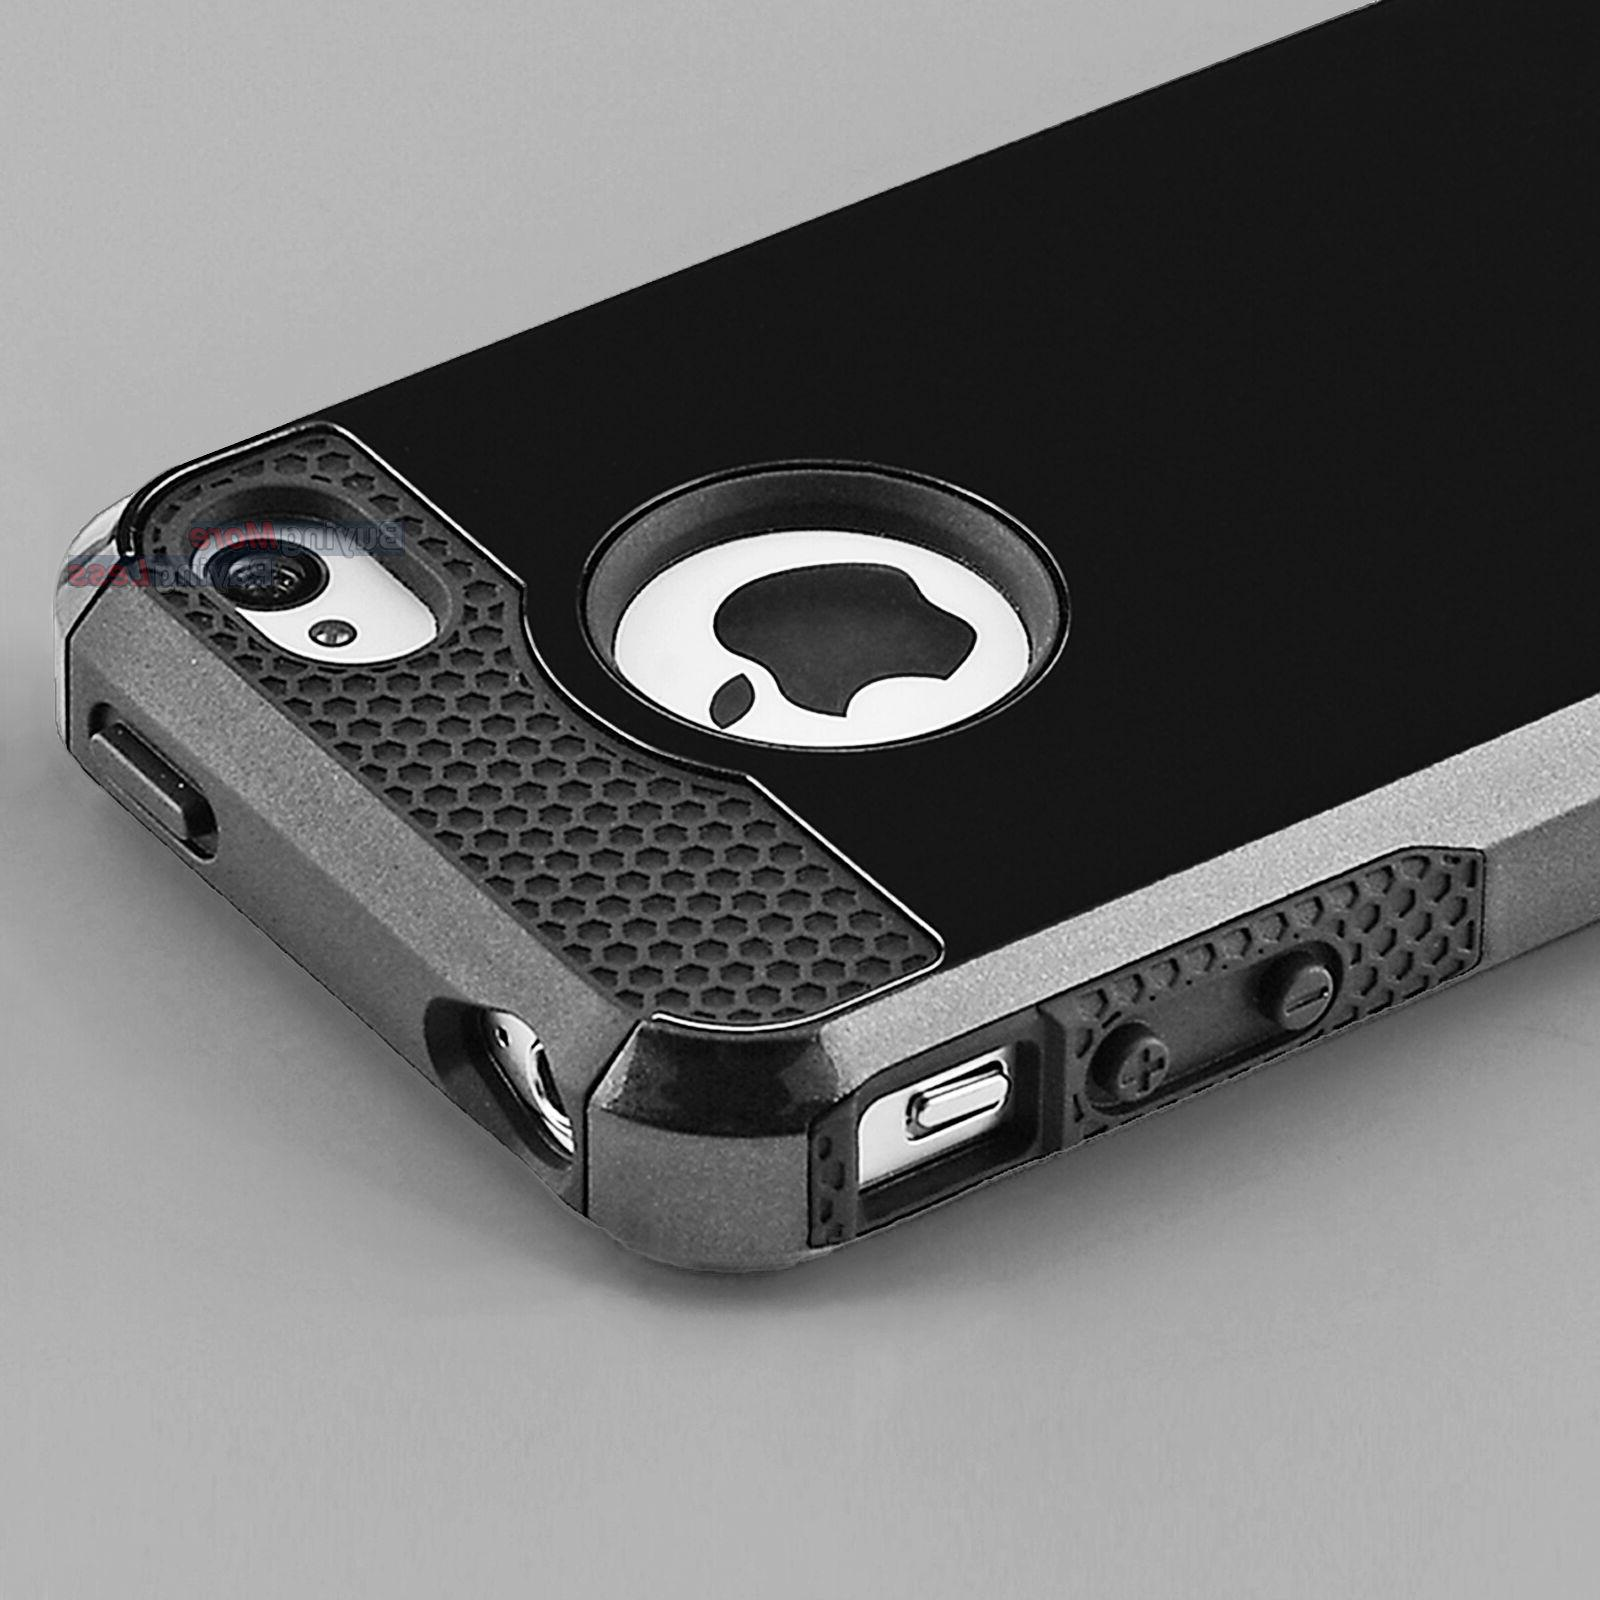 hybrid shockproof hard and soft cover case